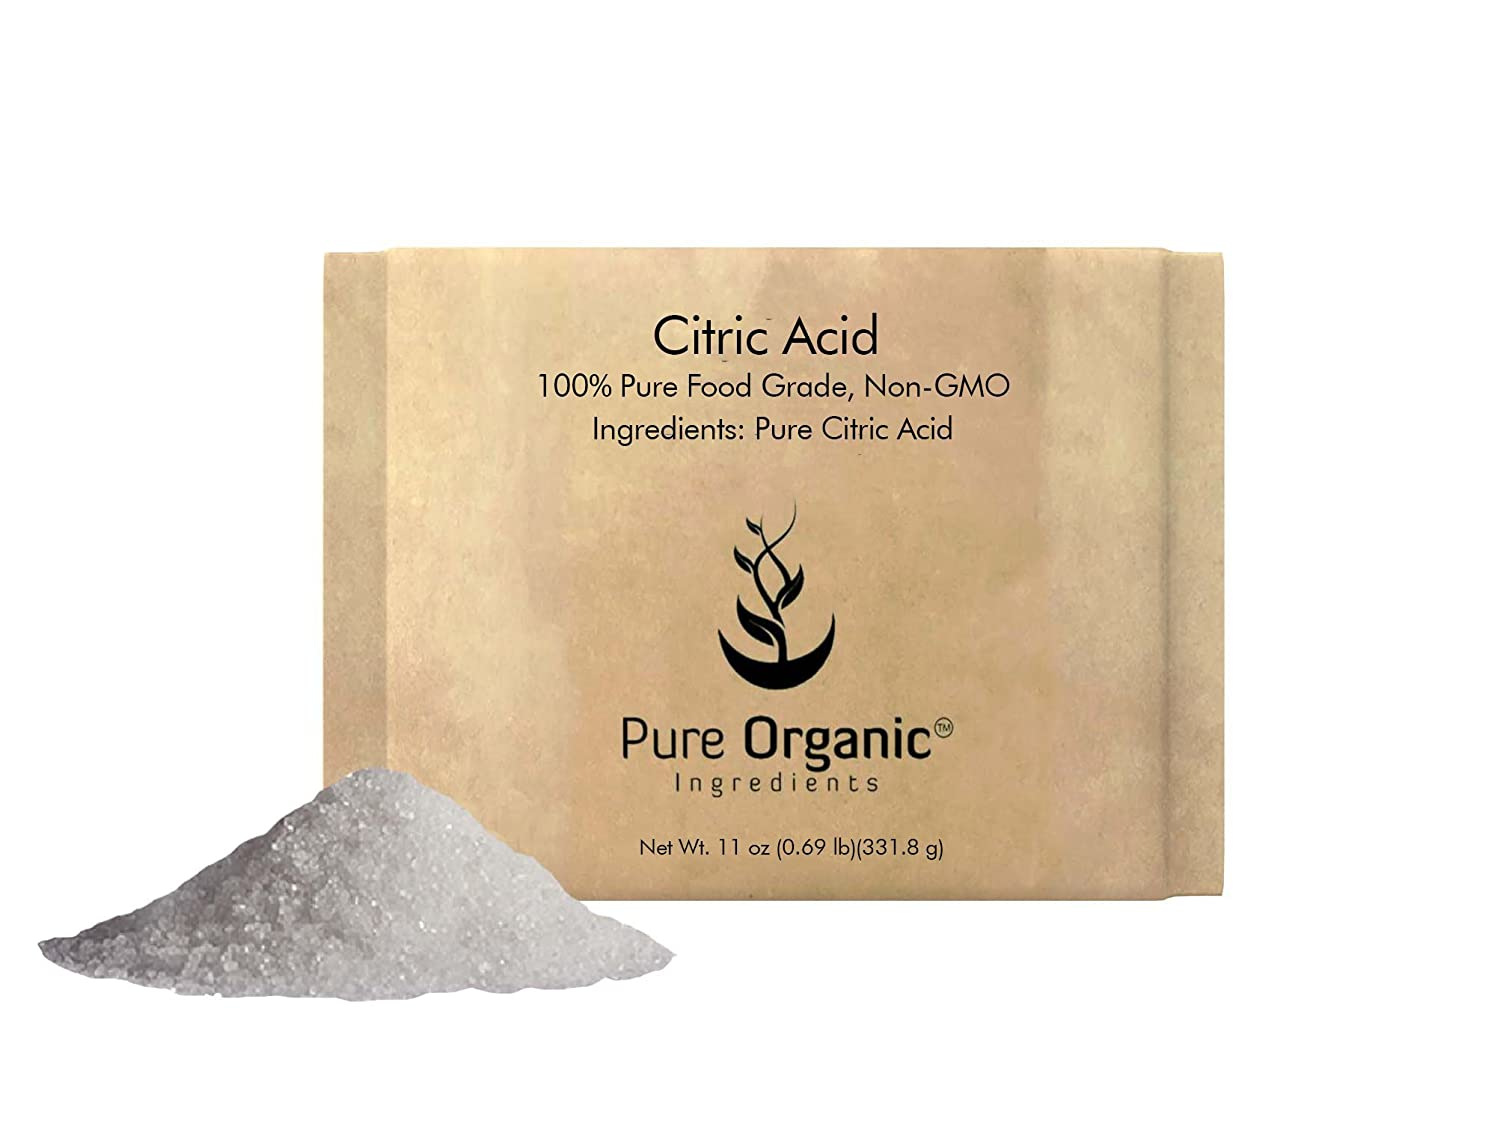 Pure Citric Acid (2 lb (32 oz) 100% Food Grade Powder (Also Available in 4 oz, 11 oz, 1 lb, 55 lb) Pure Organic Ingredients